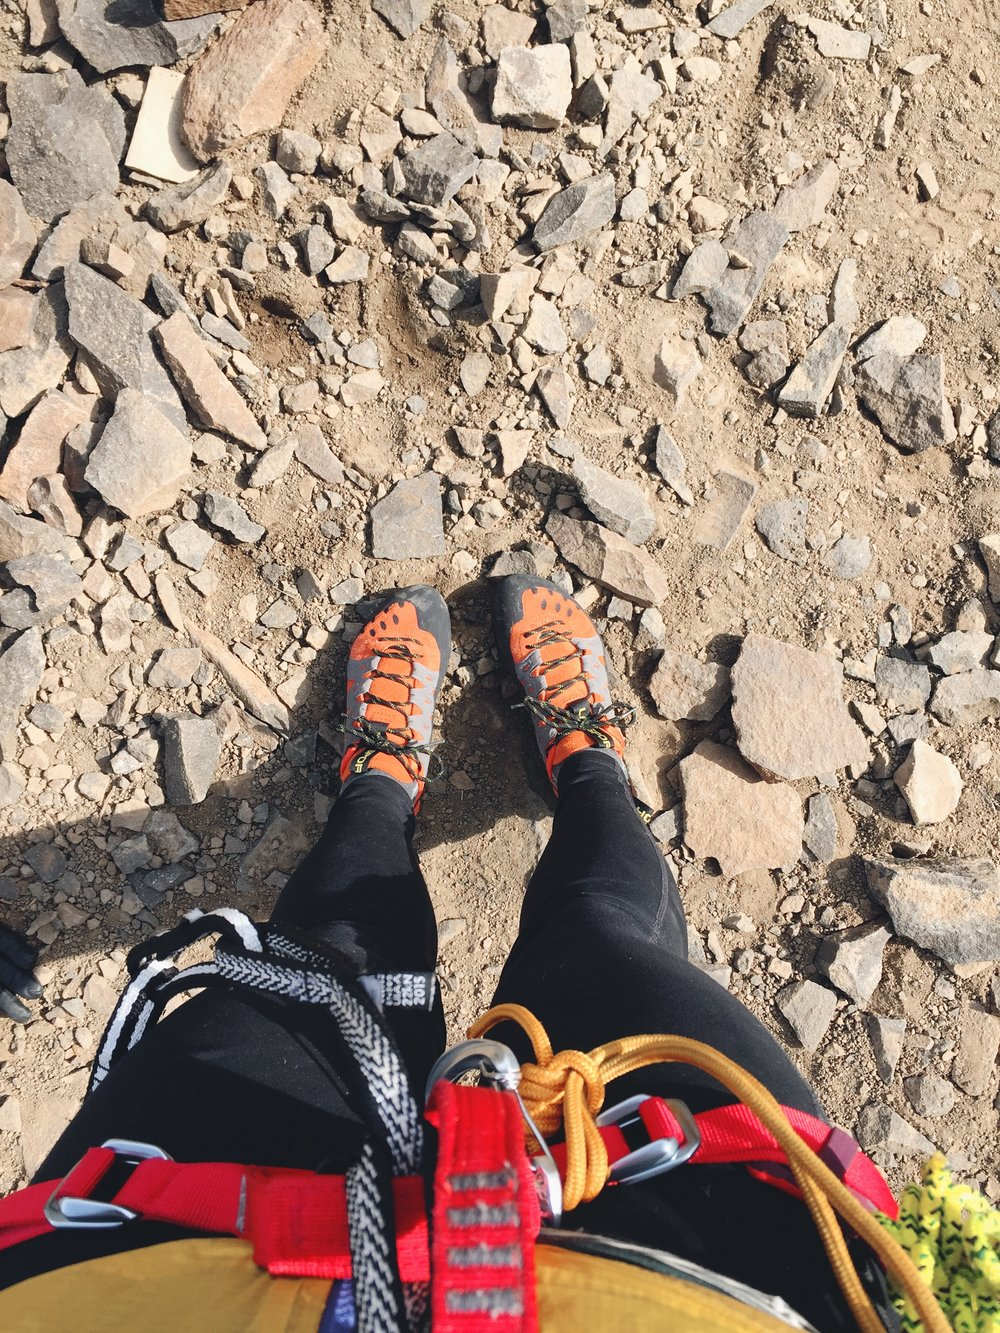 It was the first time we could climb in our shoes outside. Once again, I had a terrible time and was told I was not going to be able to climb the Tooth if I didn't overcome my mental block (trusting my feet and not being scared).